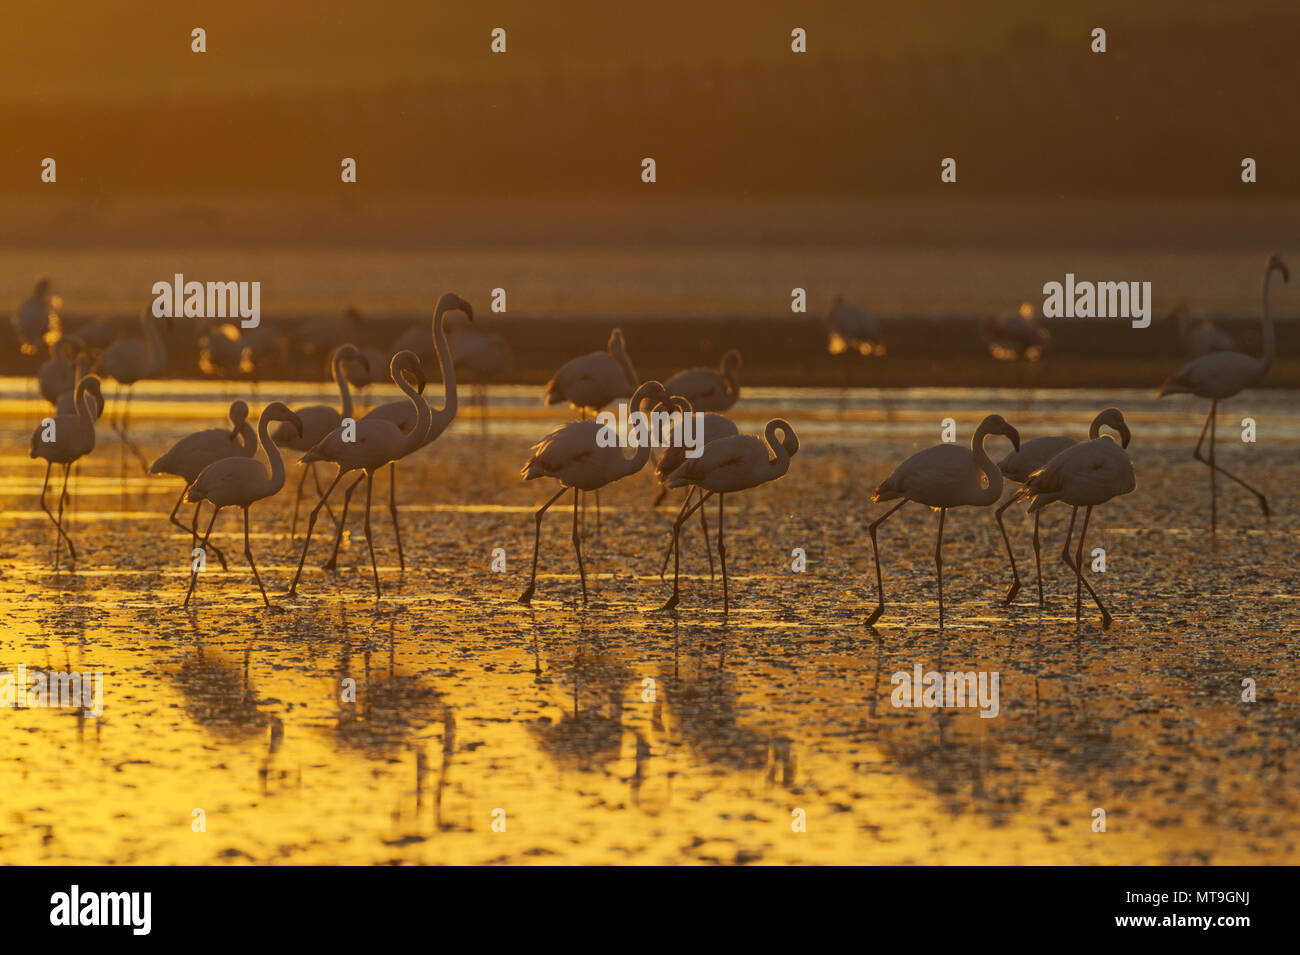 Greater Flamingo (Phoenicopterus roseus). At sunset at the Laguna de Fuente de Piedra near the town of Antequera. This is the largest natural lake in Andalusia and Europe's only inland breeding ground for this species. Malaga province, Andalusia, Spain. - Stock Image